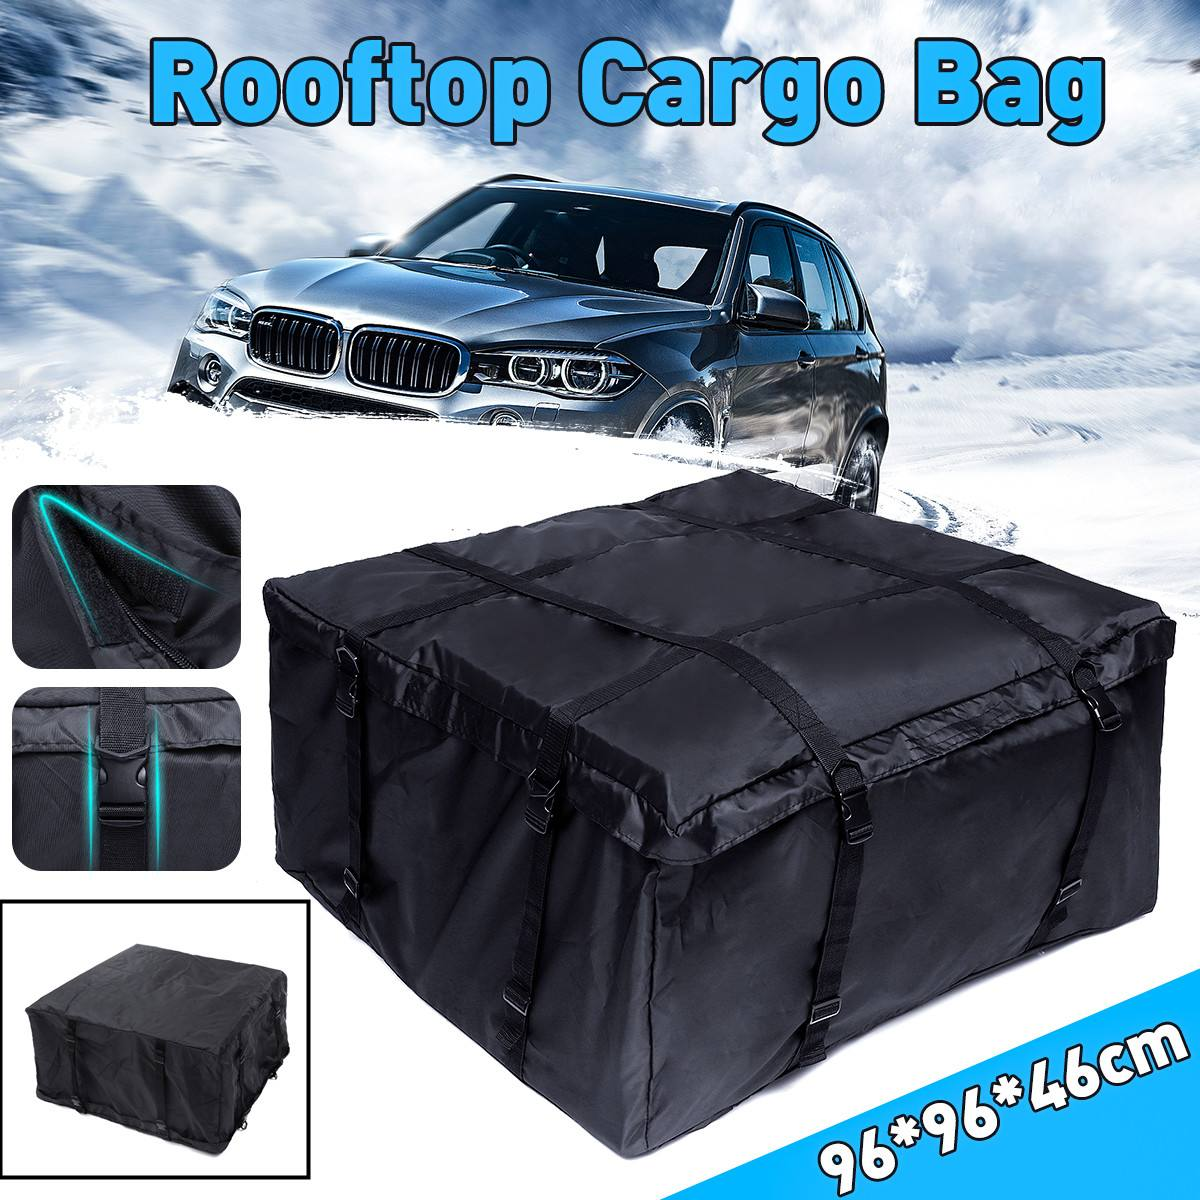 96X96X46cm Car Roof Rack Bag Roof Top Bag Rack Cargo Carrier Luggage Storage Travel Waterproof SUV Van for Cars image